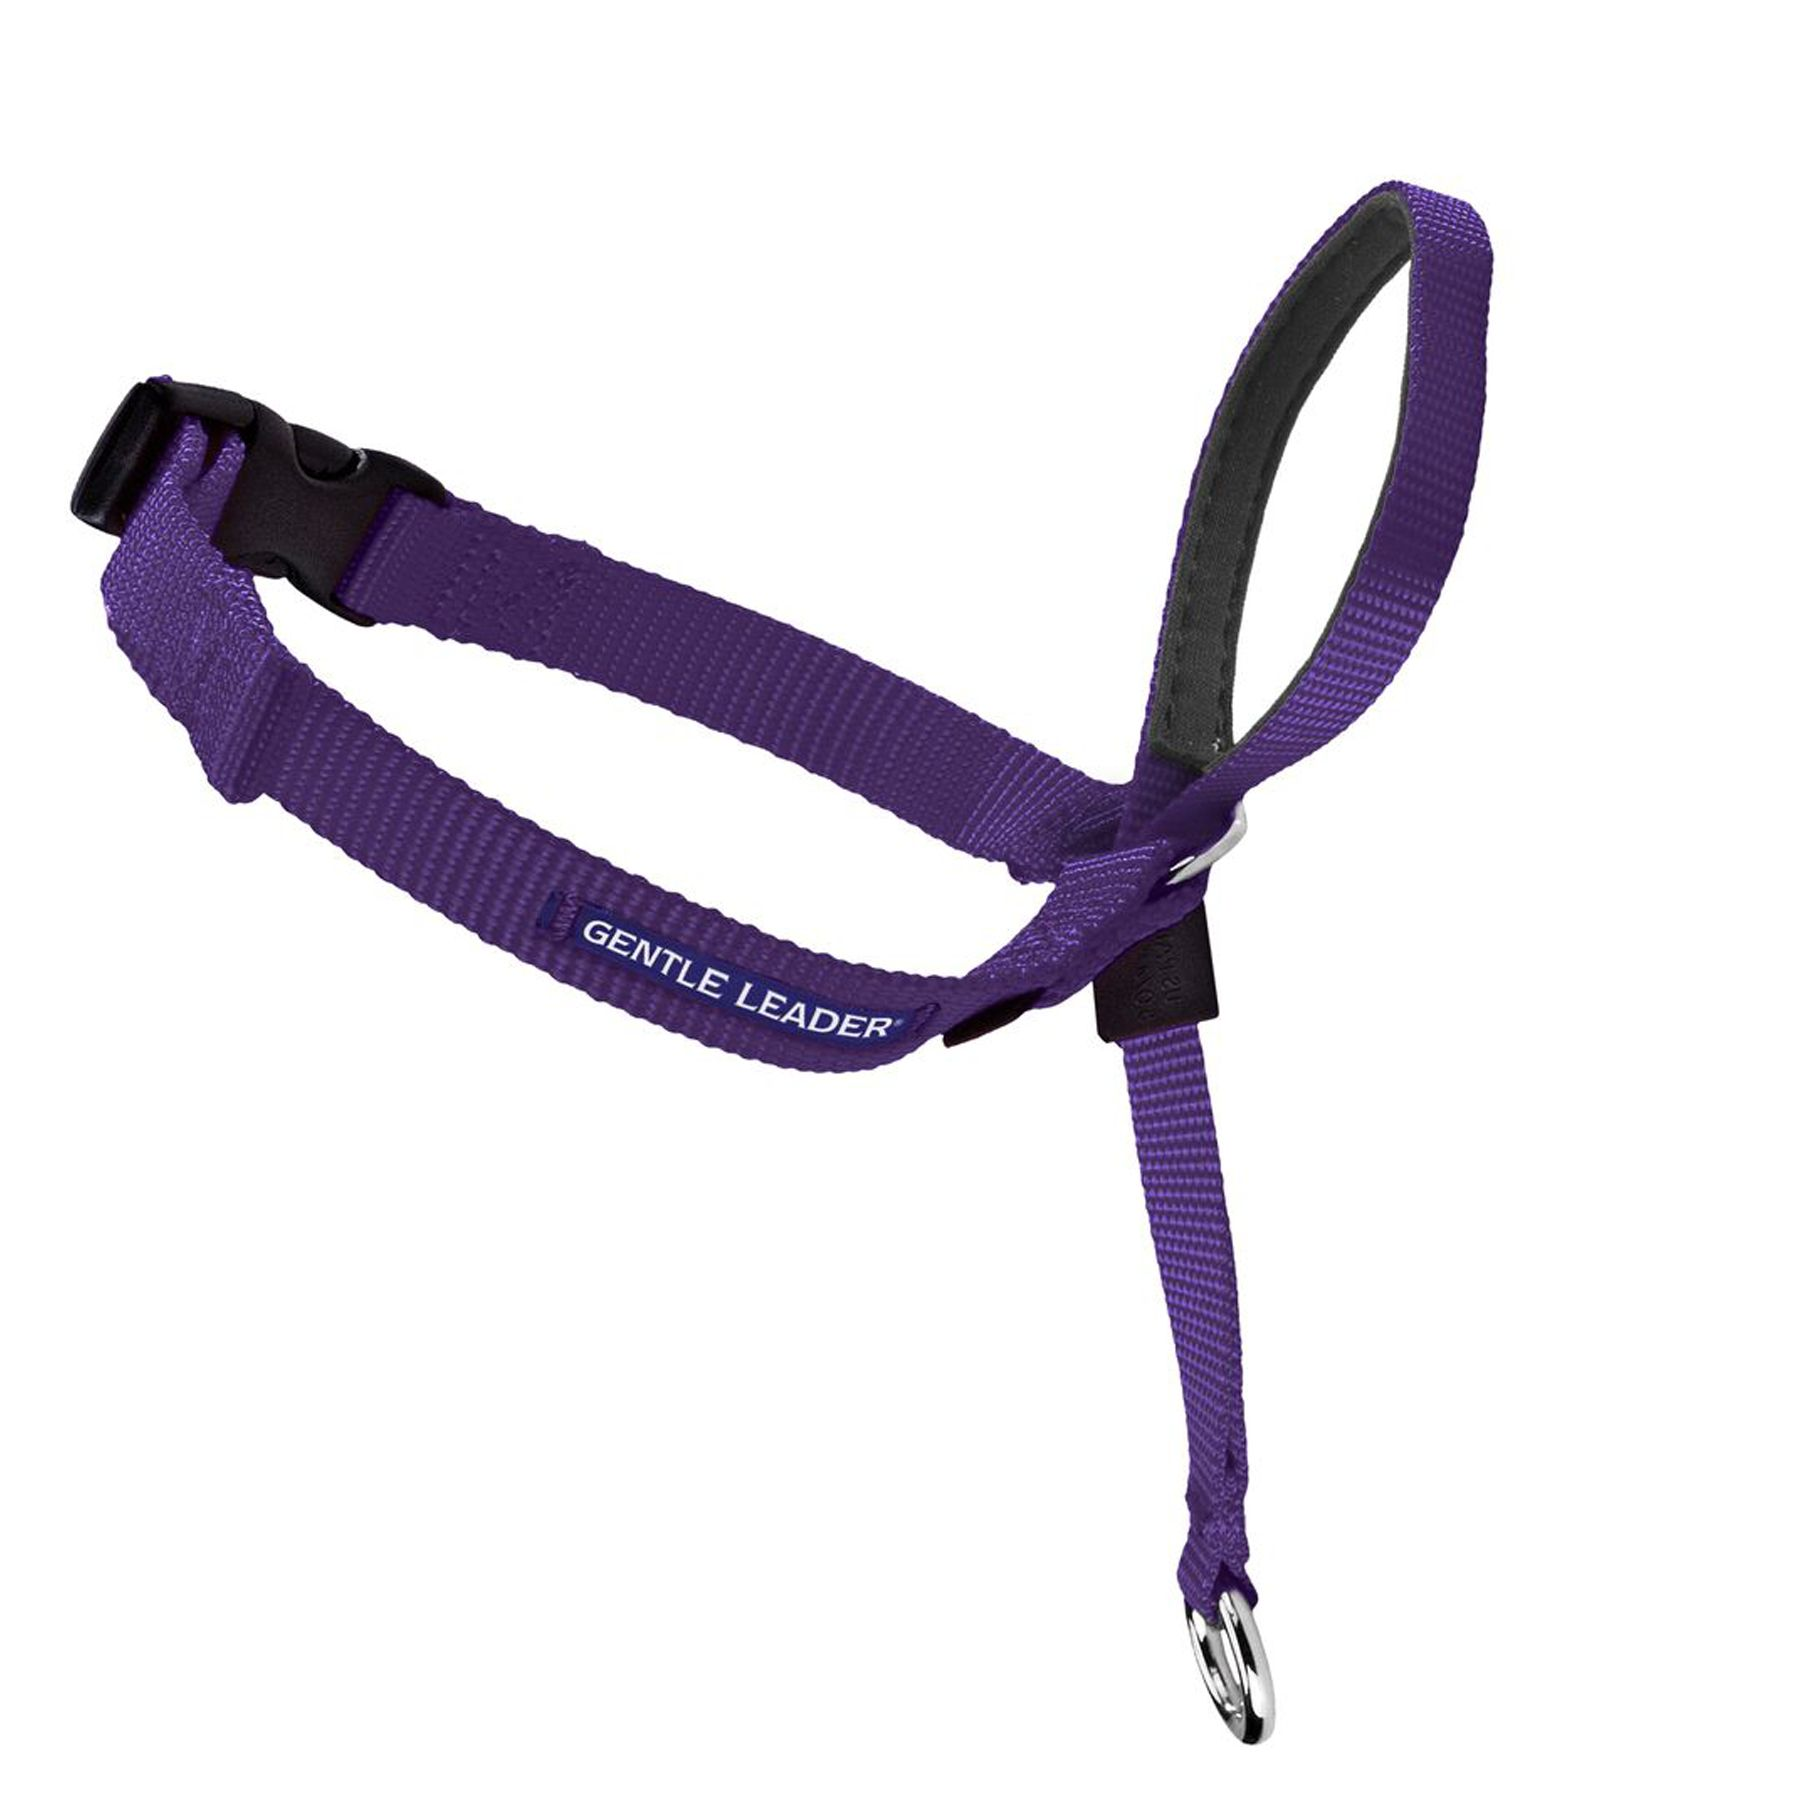 759023011394 UPC - Pet Safe Gentle Leader Headcollar, Small, Deep